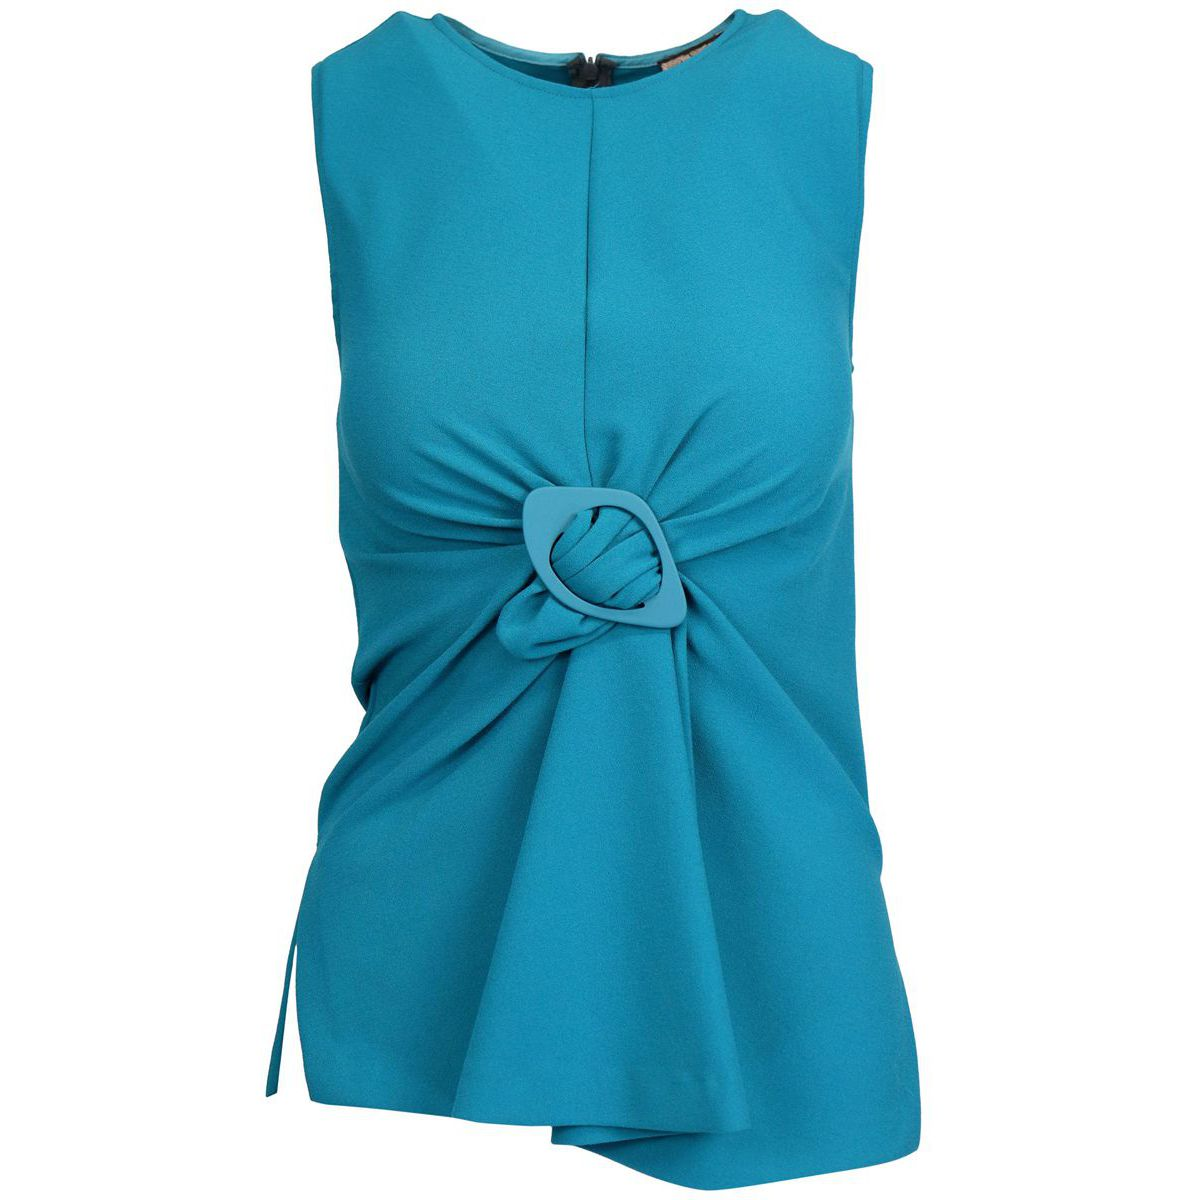 Sleeveless top with central buckle and asymmetrical hem Teal Maliparmi